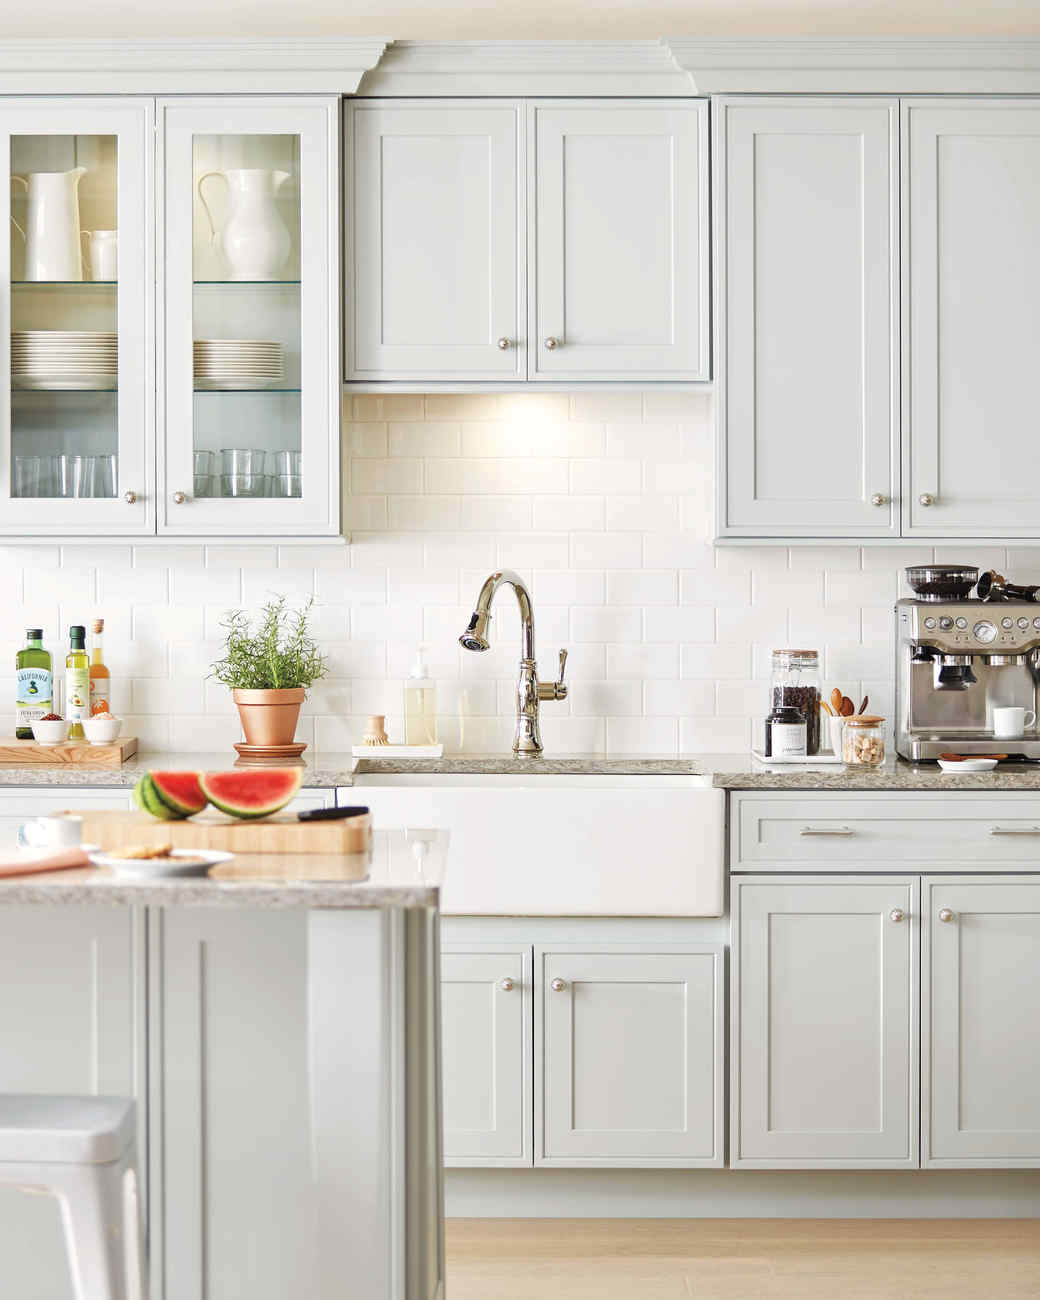 13 Common Kitchen Renovation Mistakes to Avoid | Martha Stewart